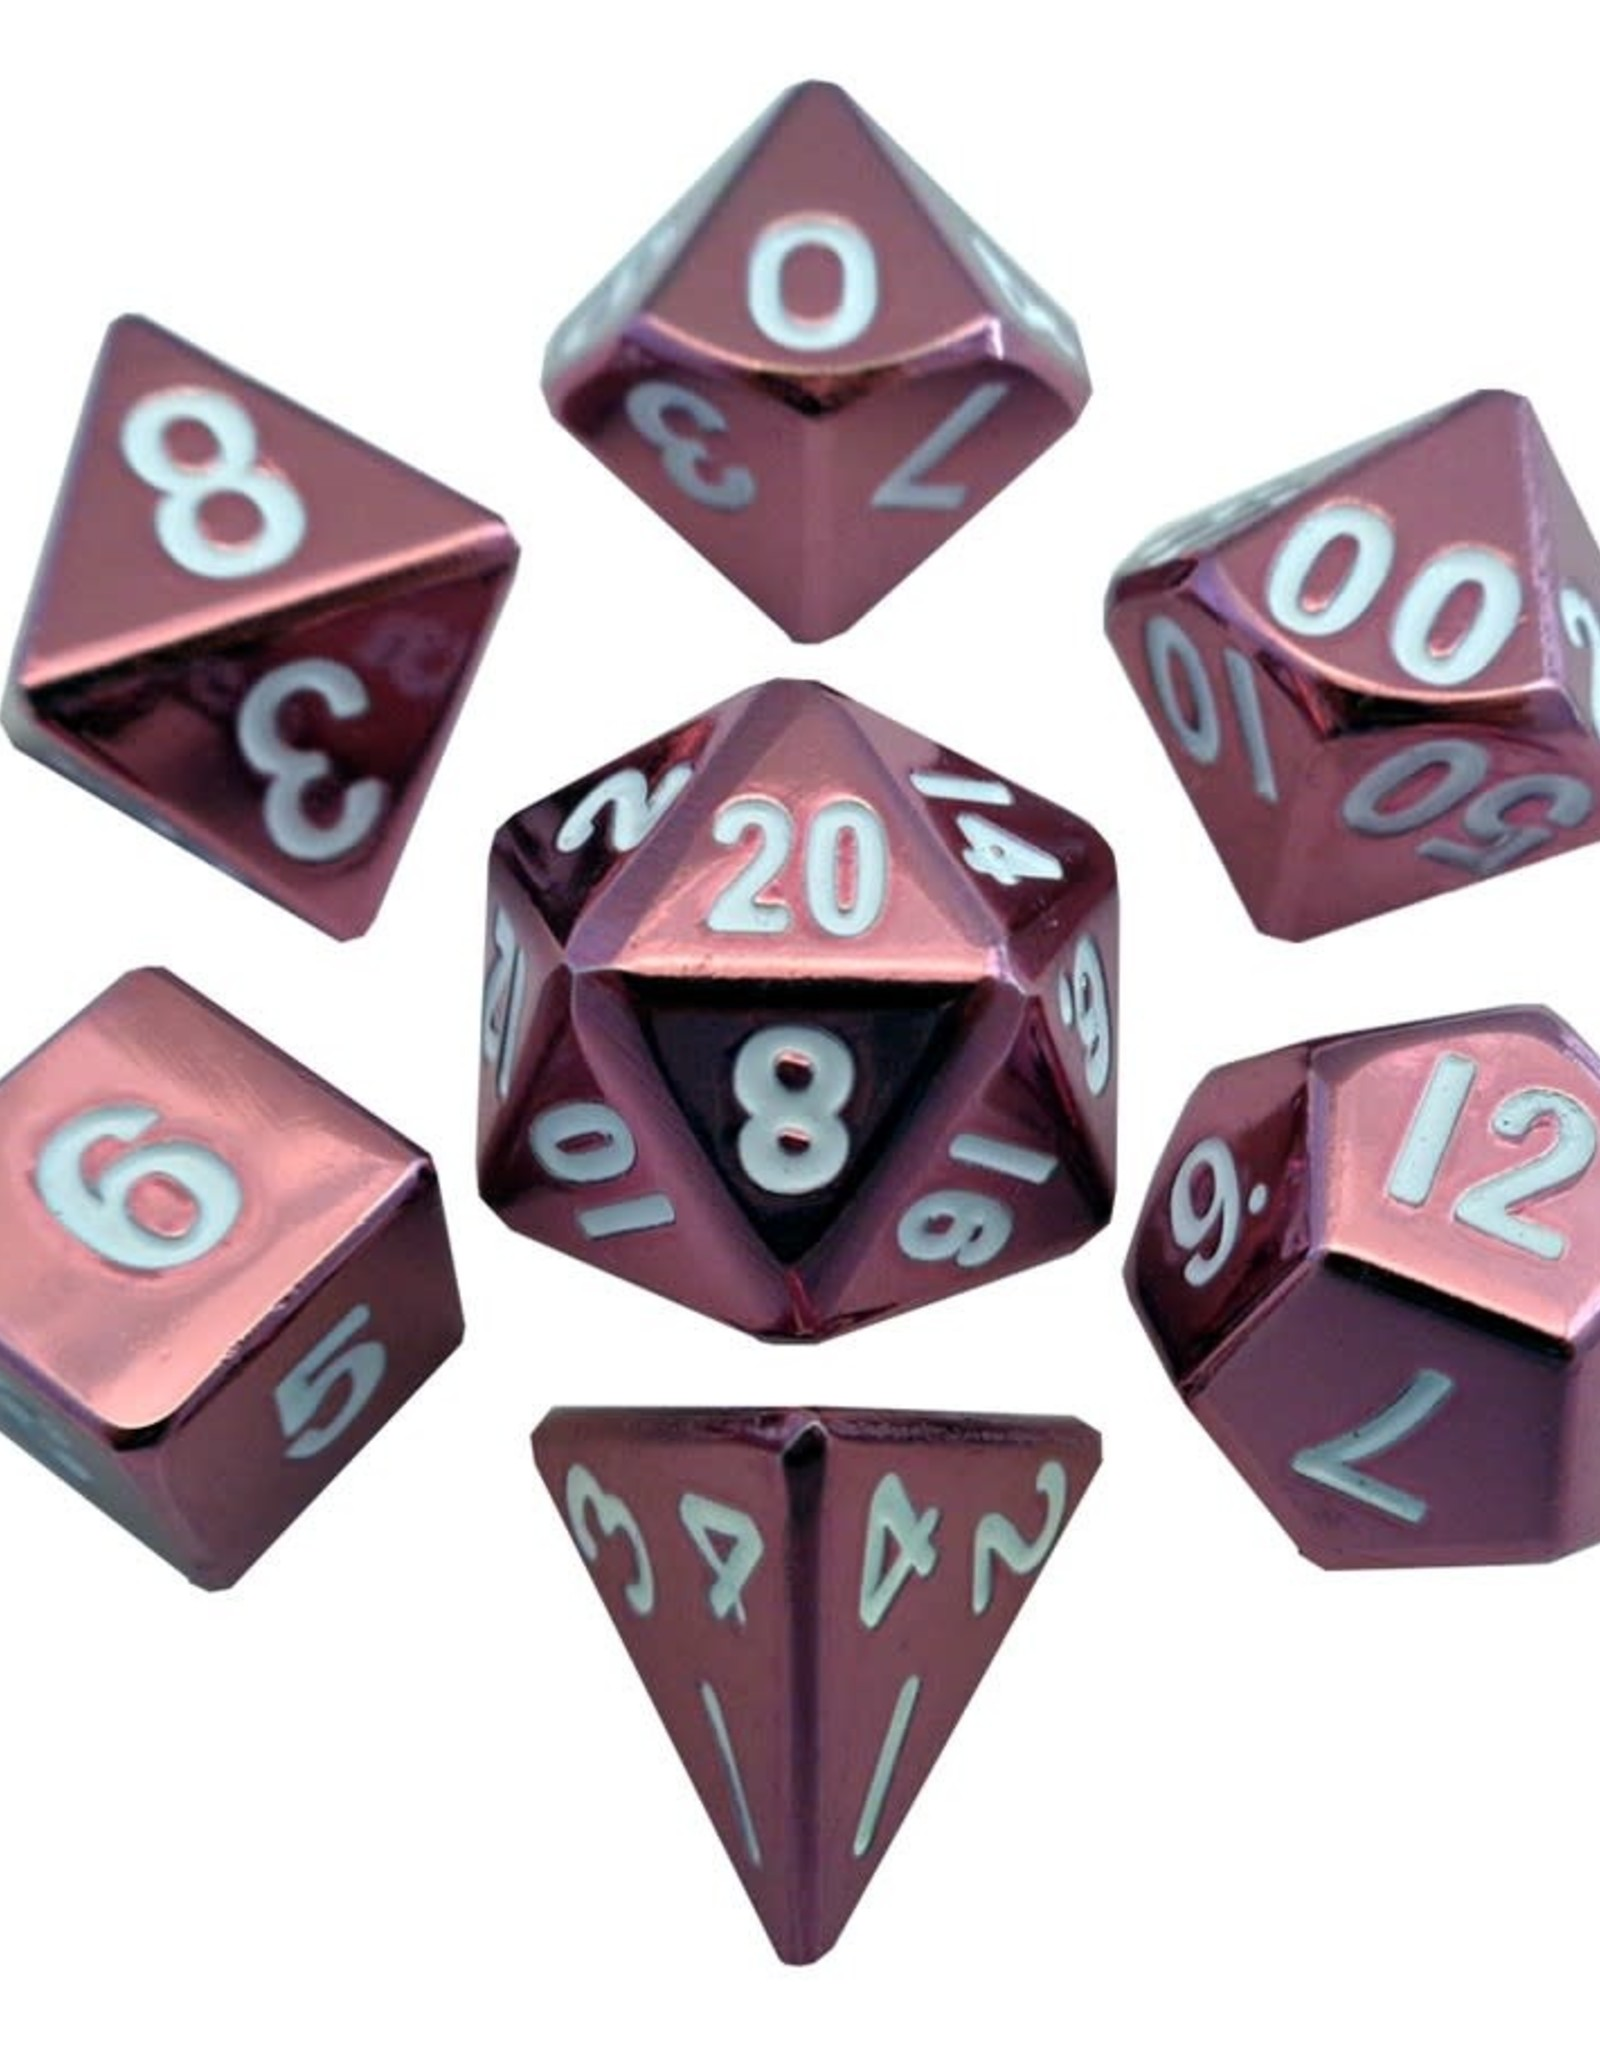 Metallic Dice Games Polyhedral Dice Set: 16mm Pink Painted Metal